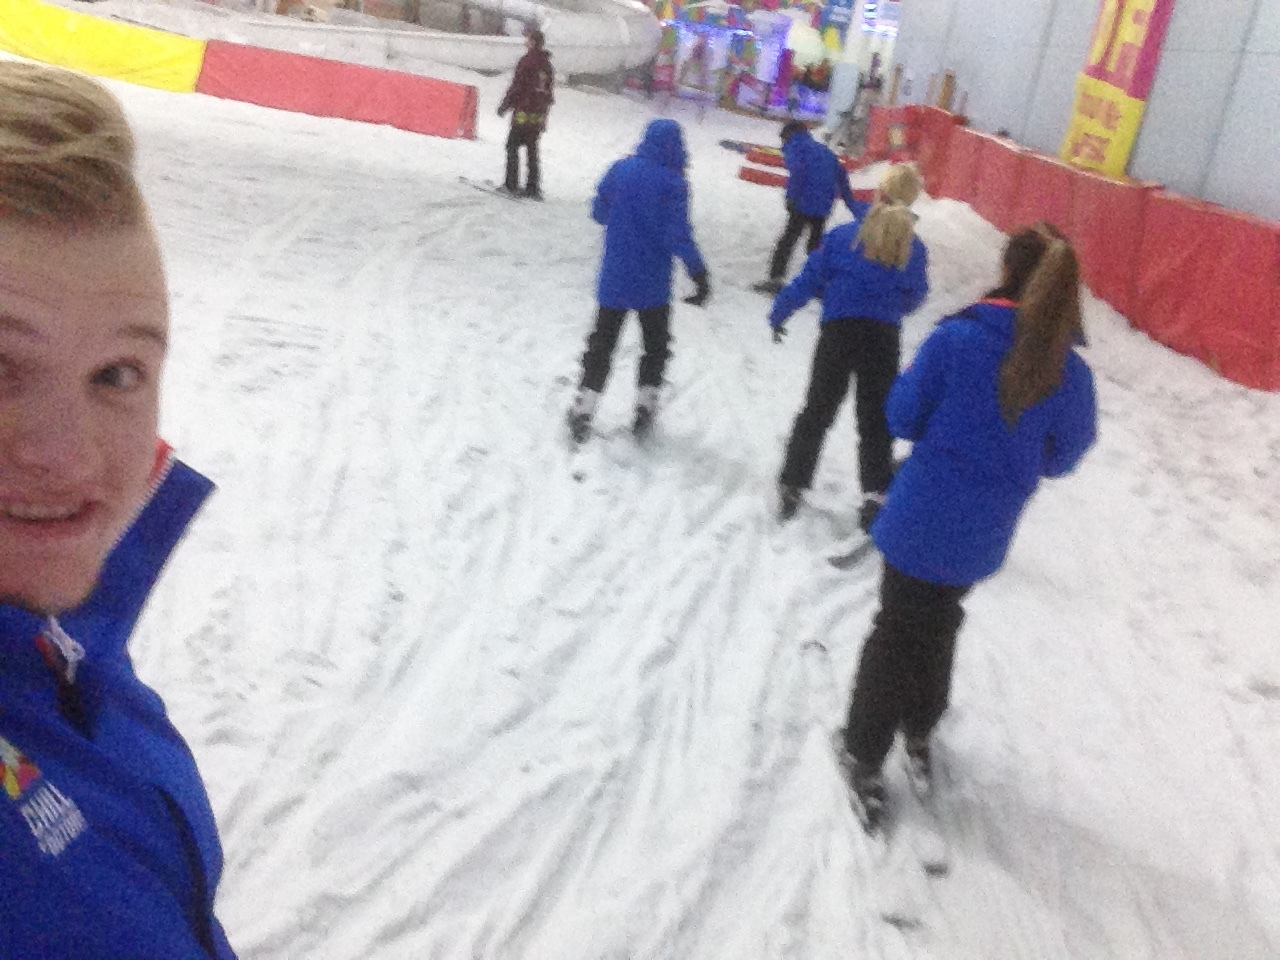 The first part of the lesson was to just slide around on the skis.